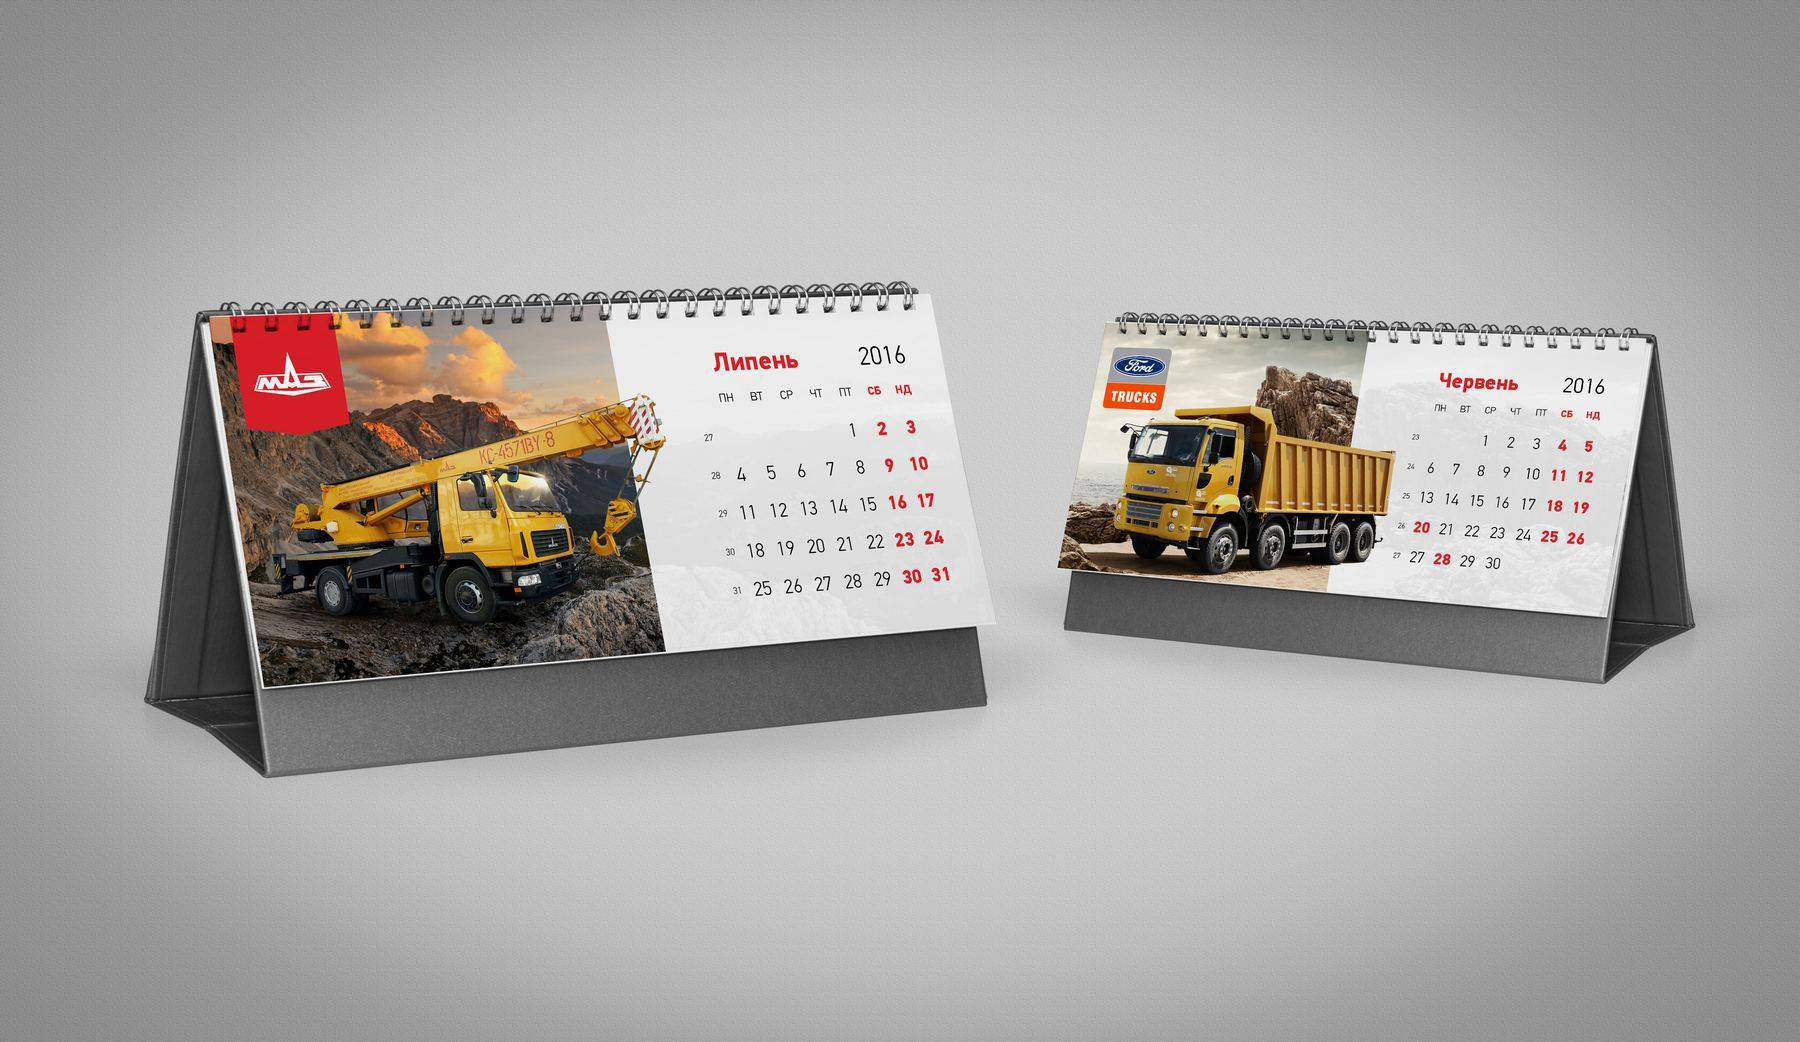 Idea generation and graphic design for desk calendar portfolio